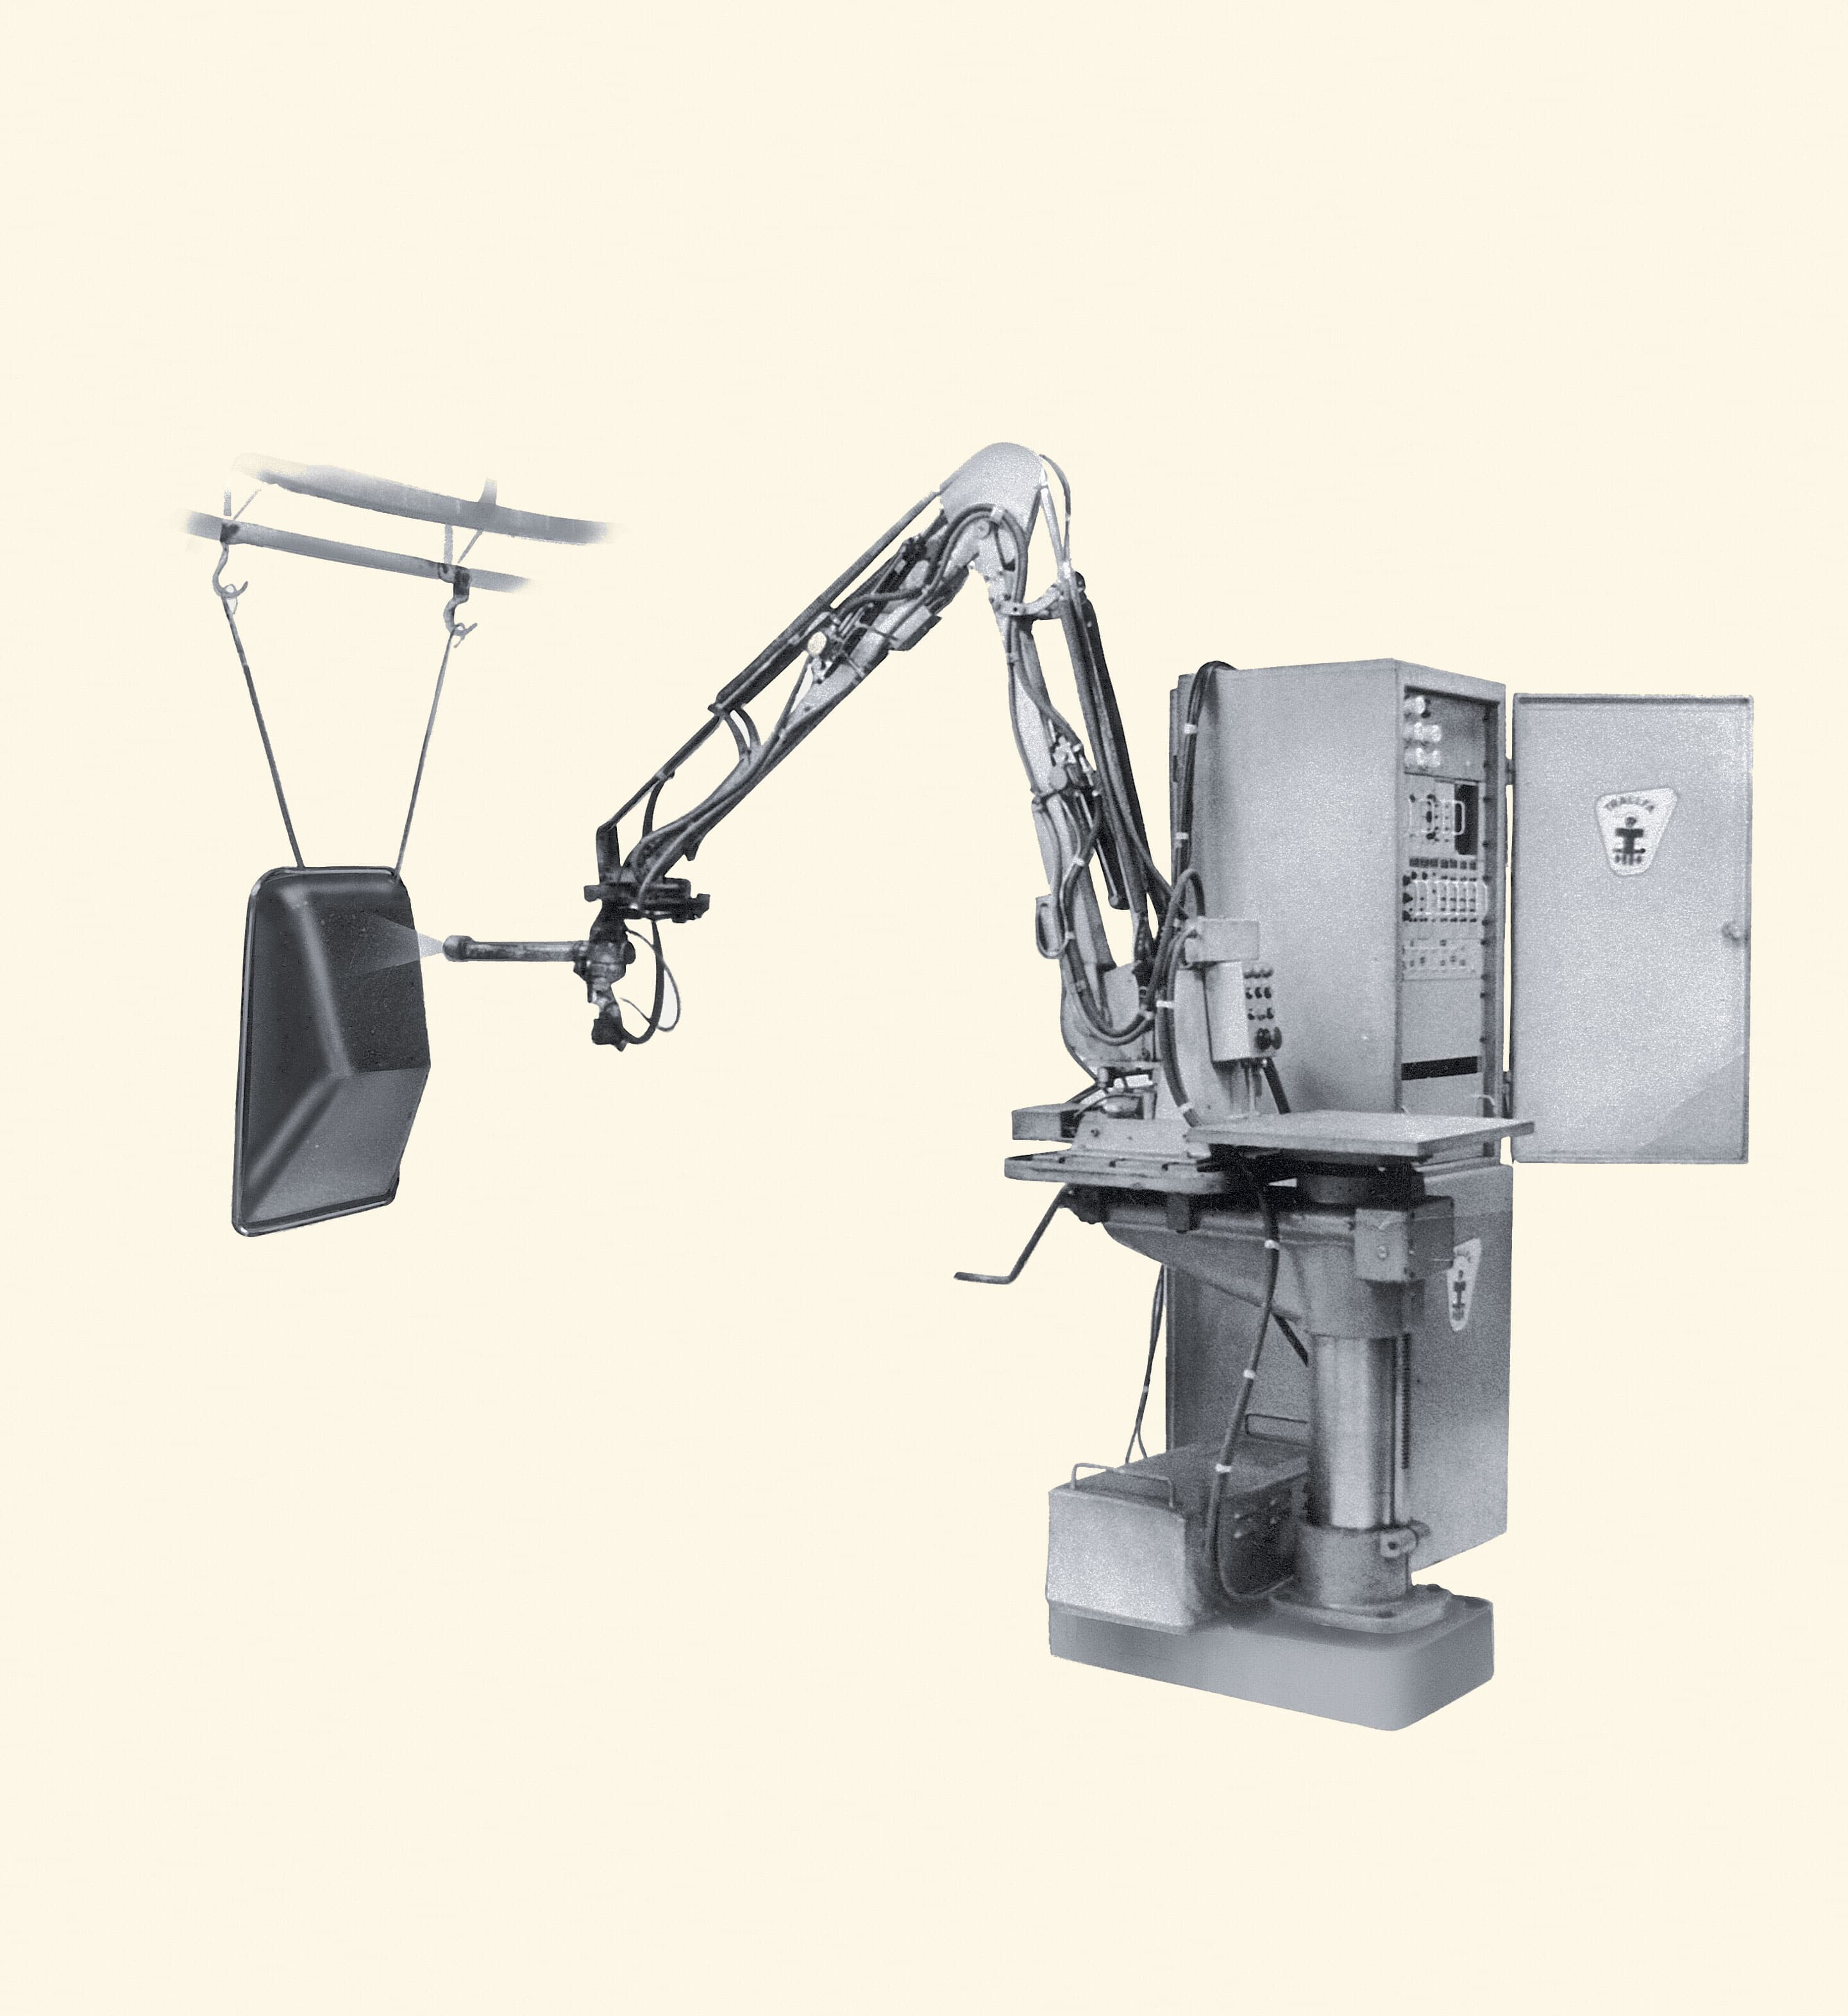 3 Early version of the Trallfa paint robot from 1969